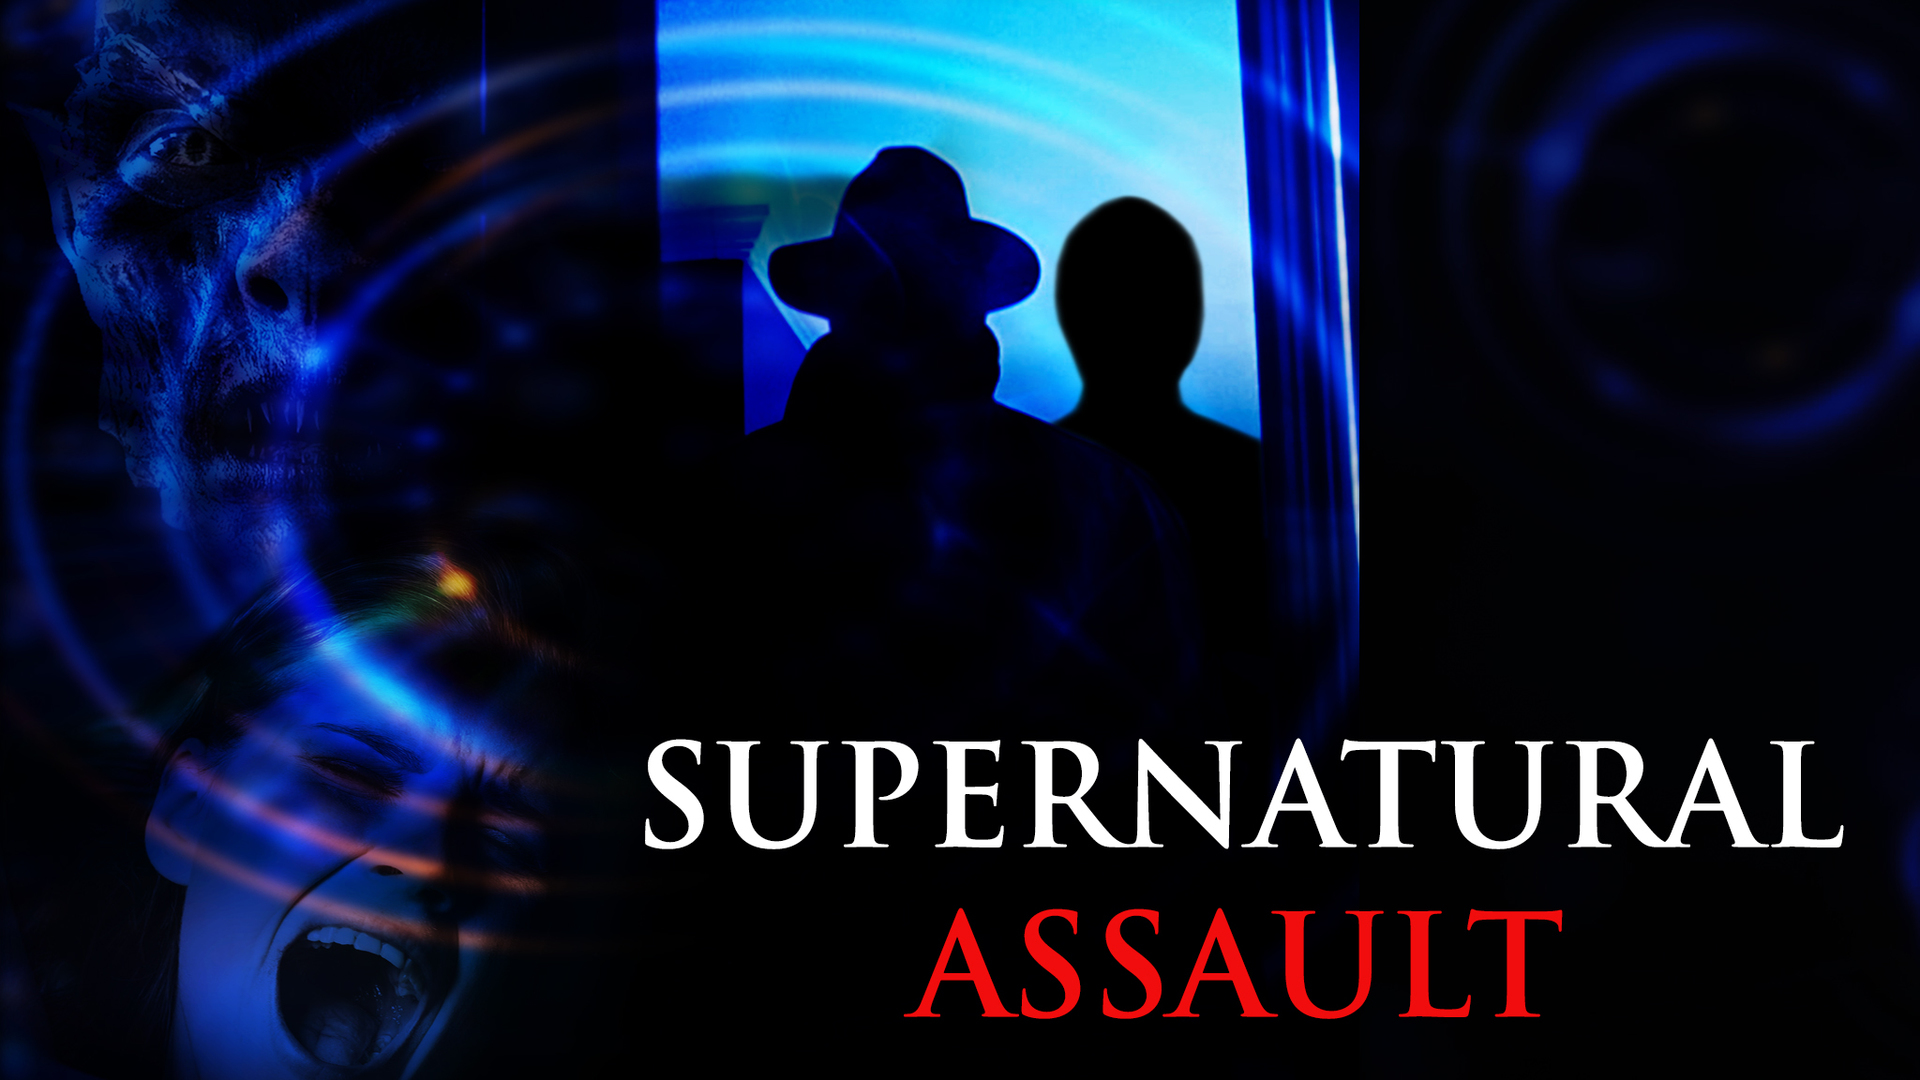 Supernatural Assault